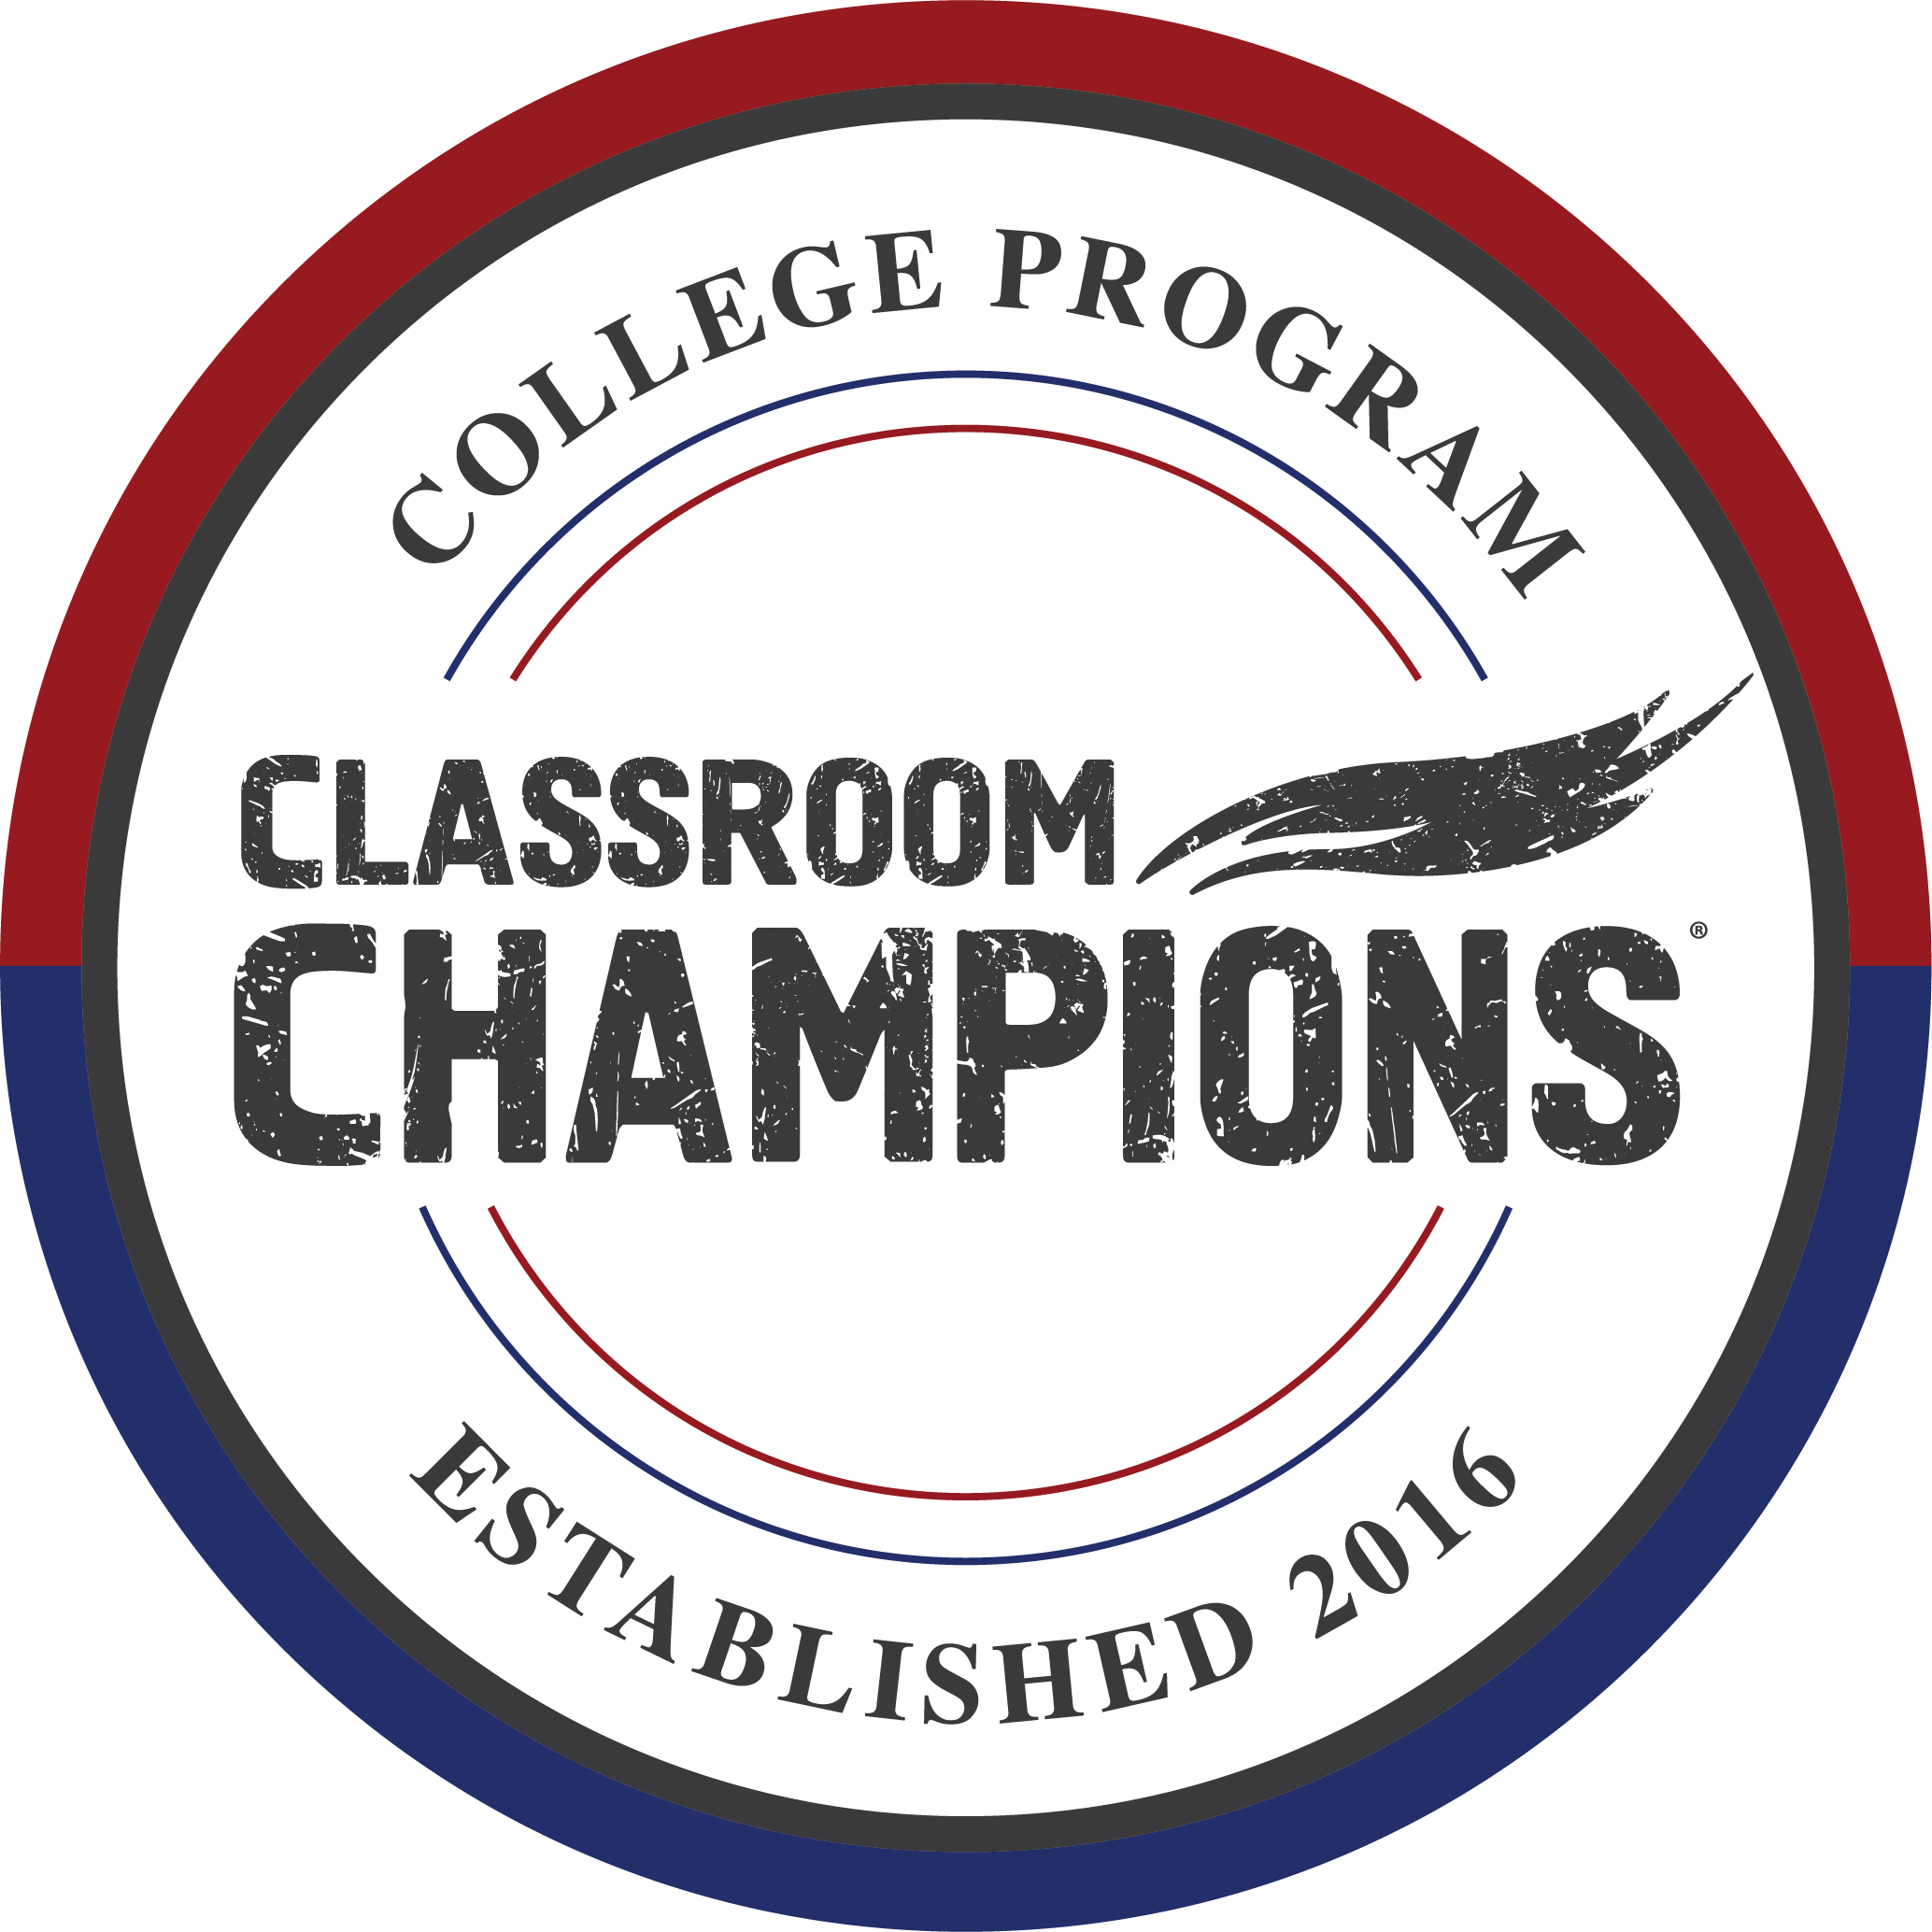 Classroom Champions College Program: University of Pennsylvania